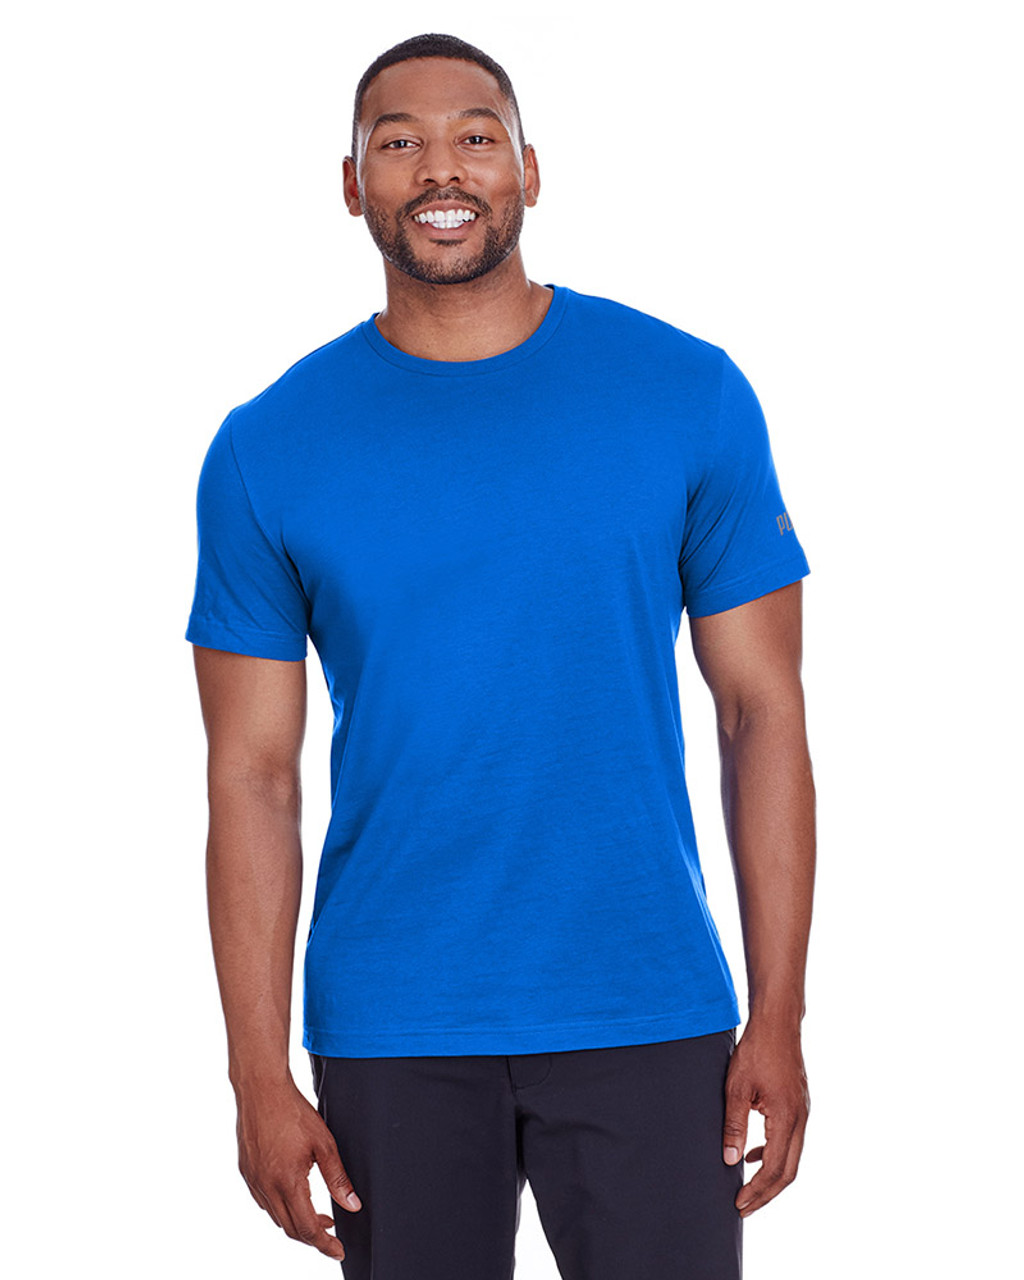 Lapis Blue/Quiet Shade - 582006 Puma Sport Essential Adult Logo T-Shirt | BlankClothing